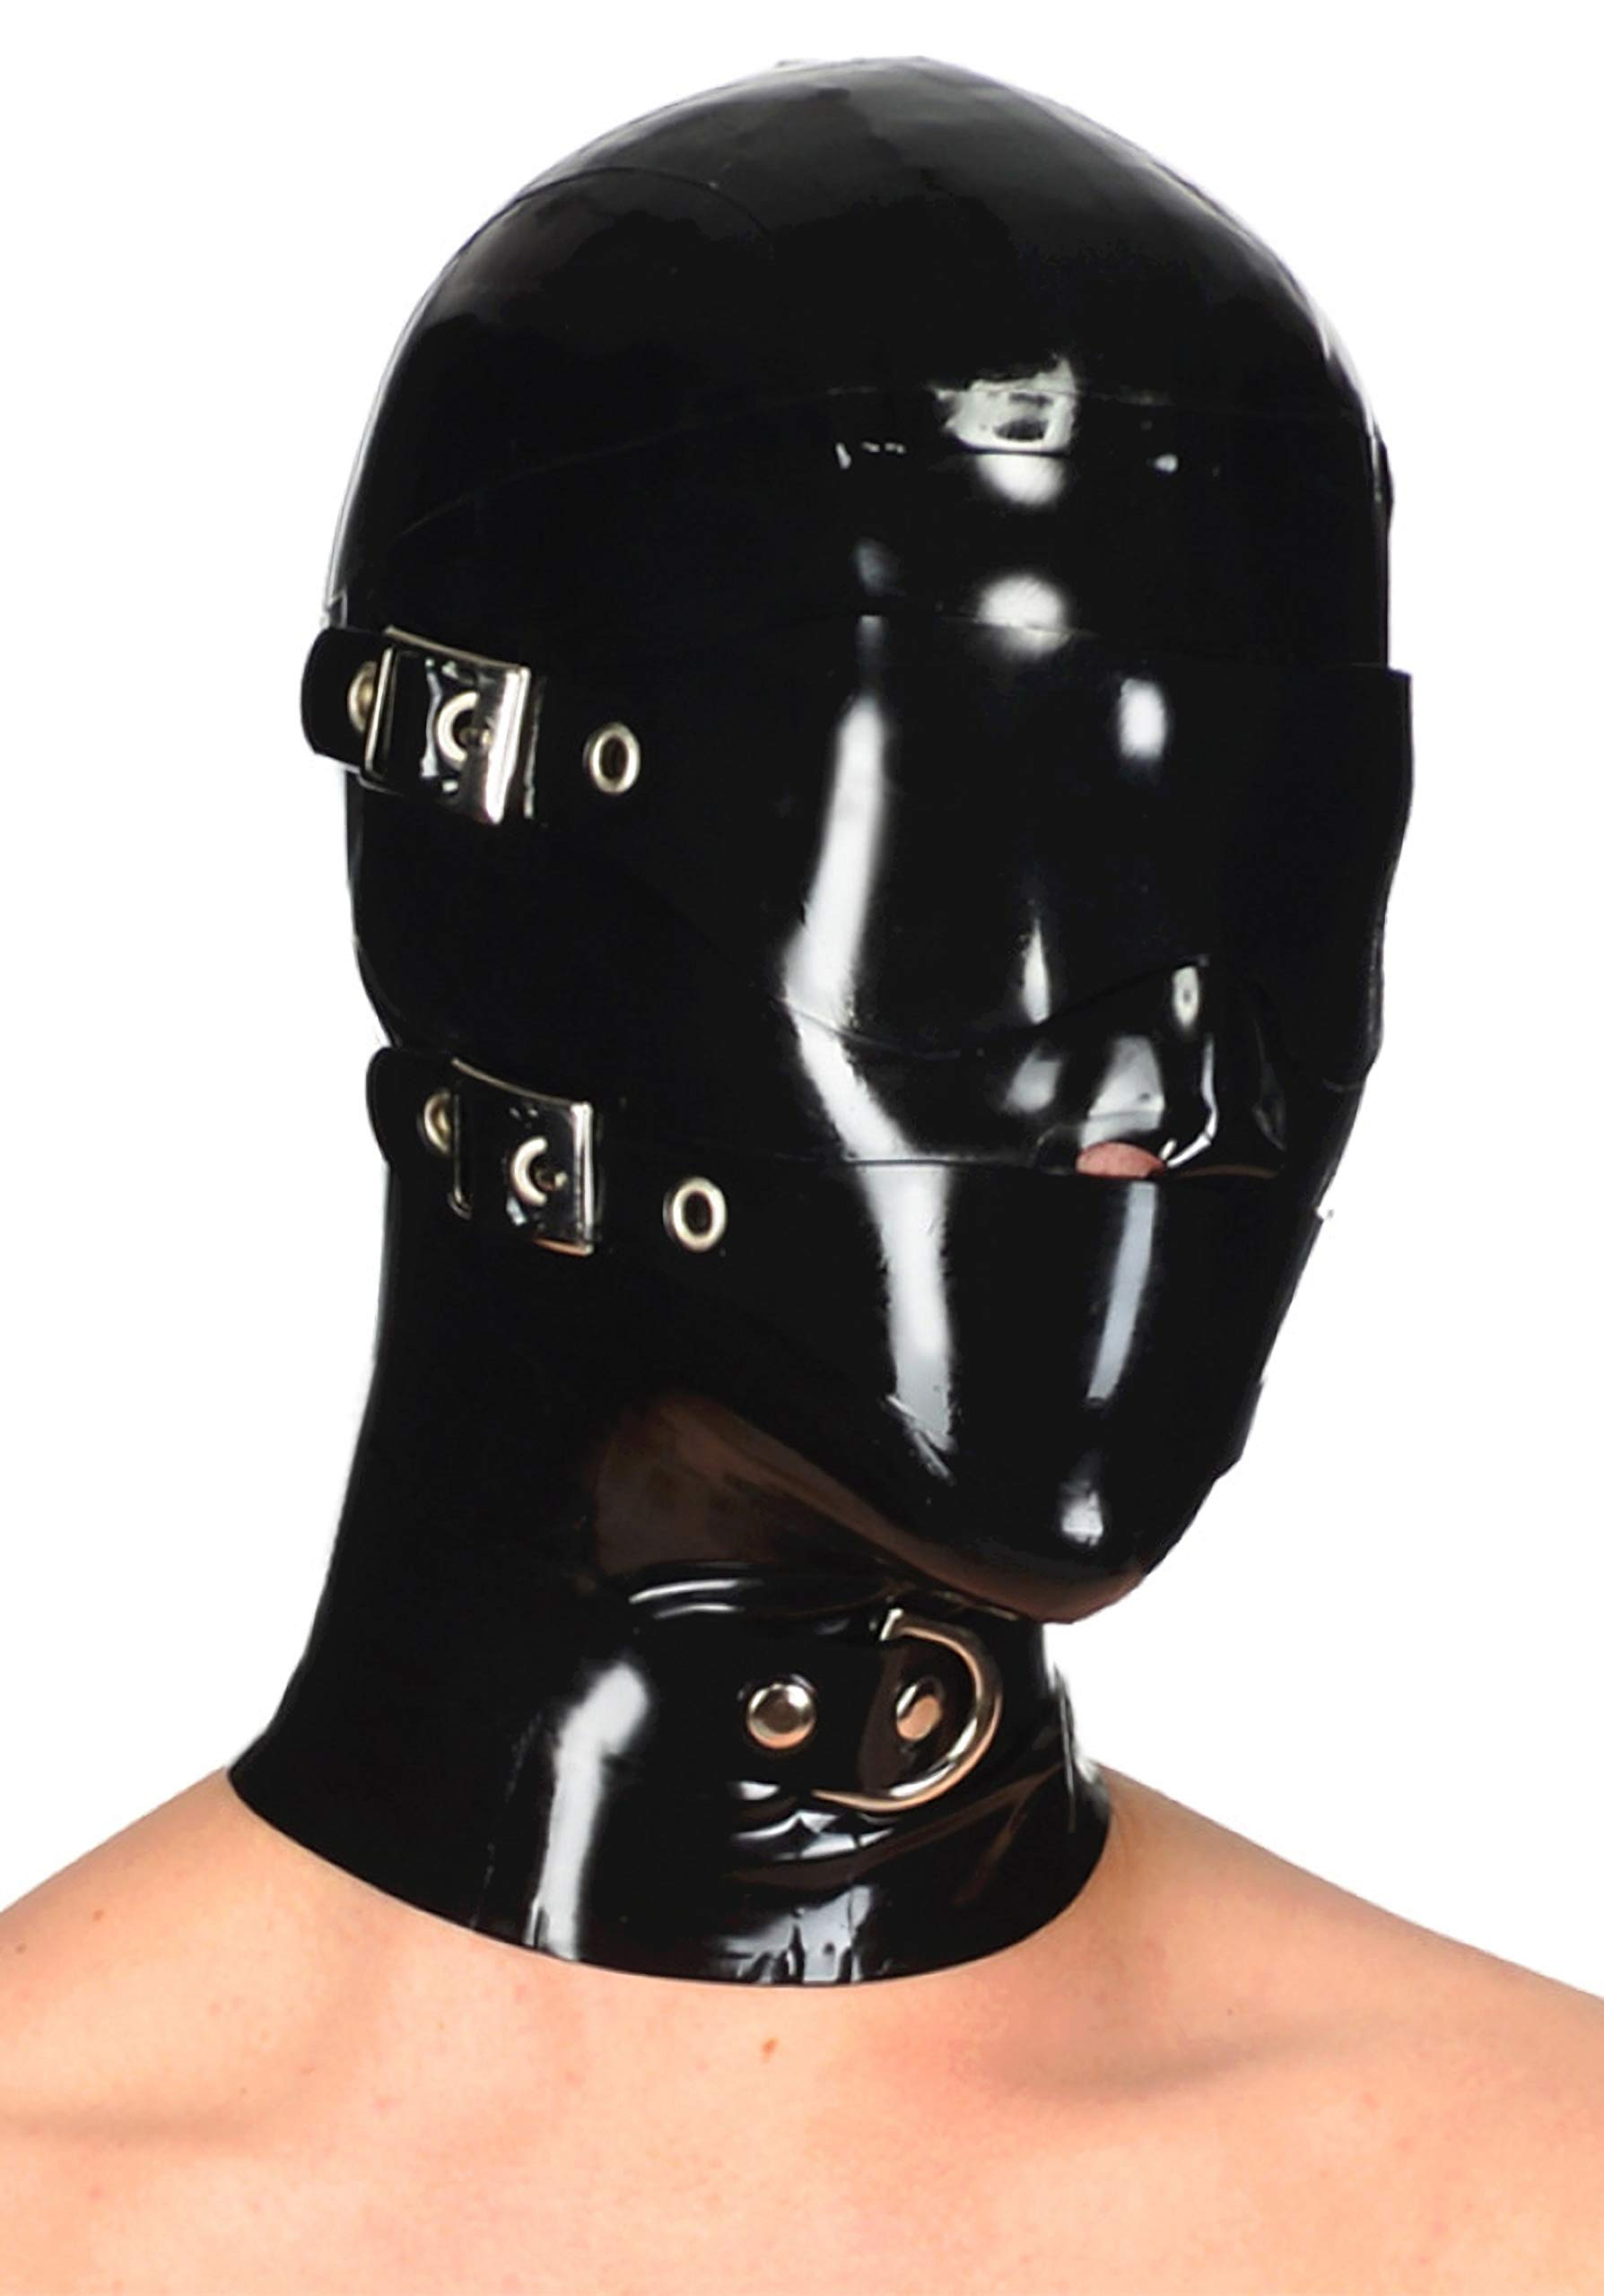 Latex Hood Rubber Full Face Blinder Detachable Cover Eye Mouth Mask Customized 0.4MM (L) Black by Palace Civet